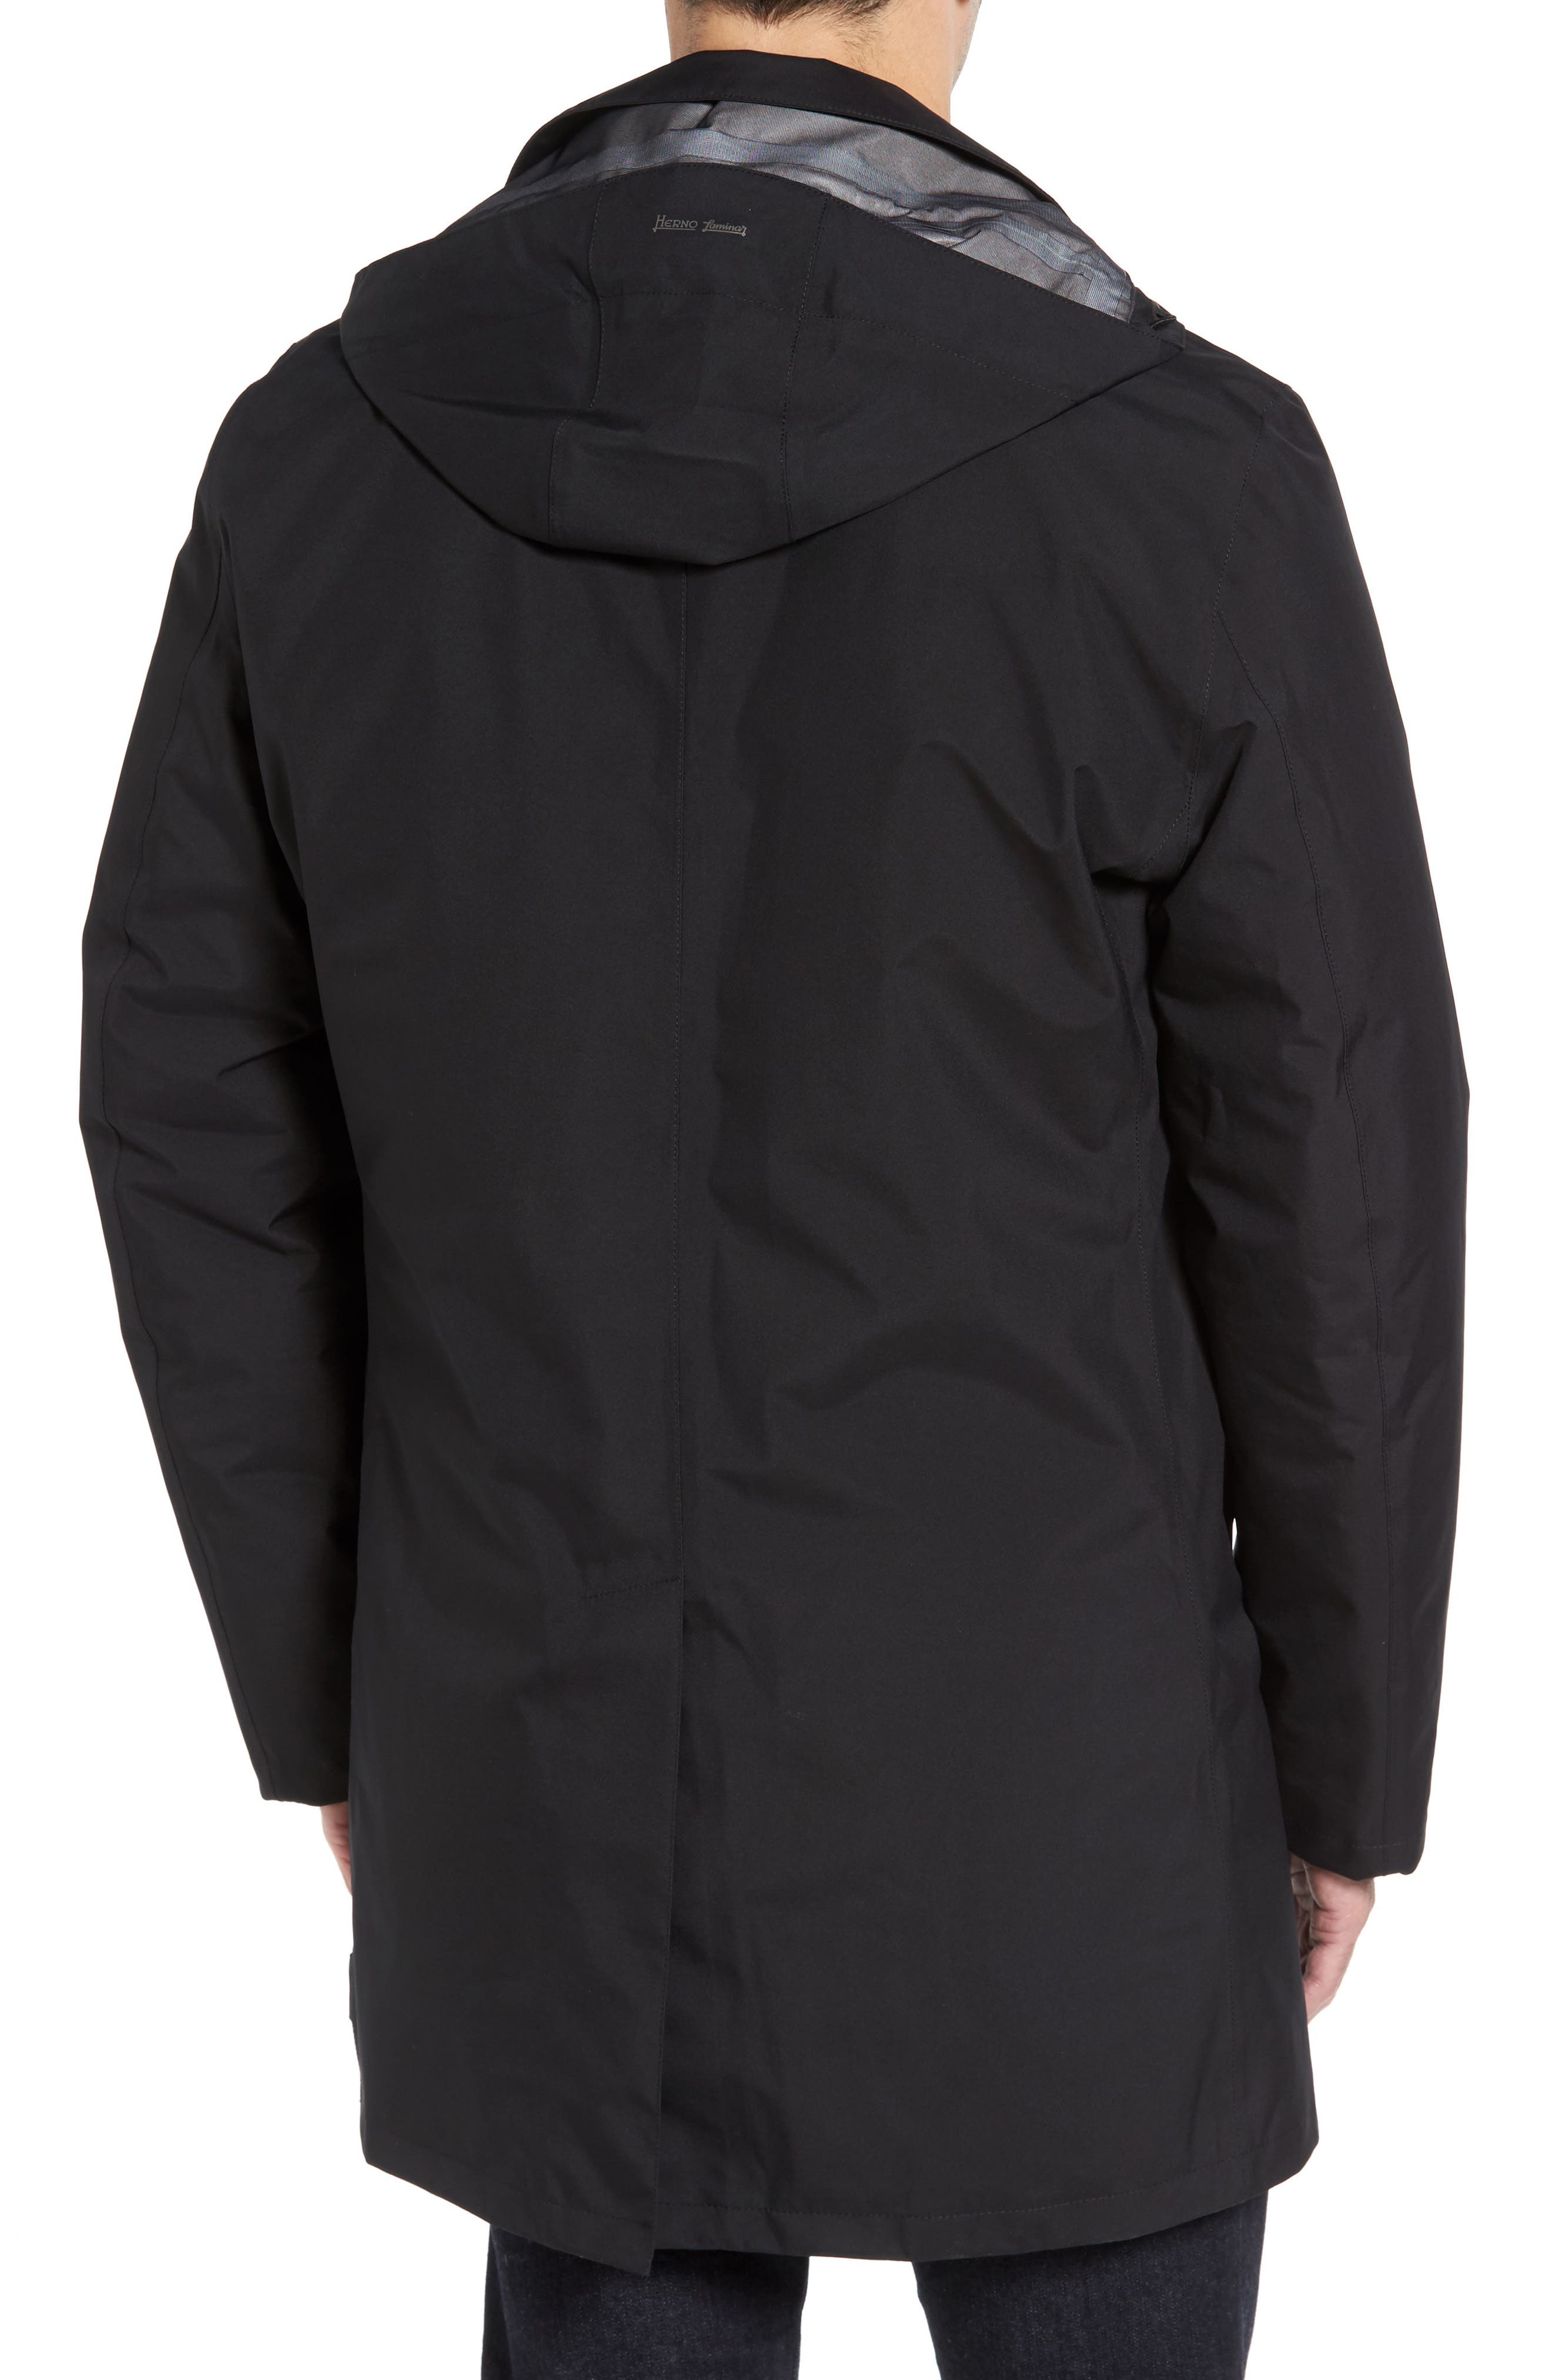 HERNO,                             Gore-Tex<sup>®</sup> 3-Layer Jacket,                             Alternate thumbnail 2, color,                             001